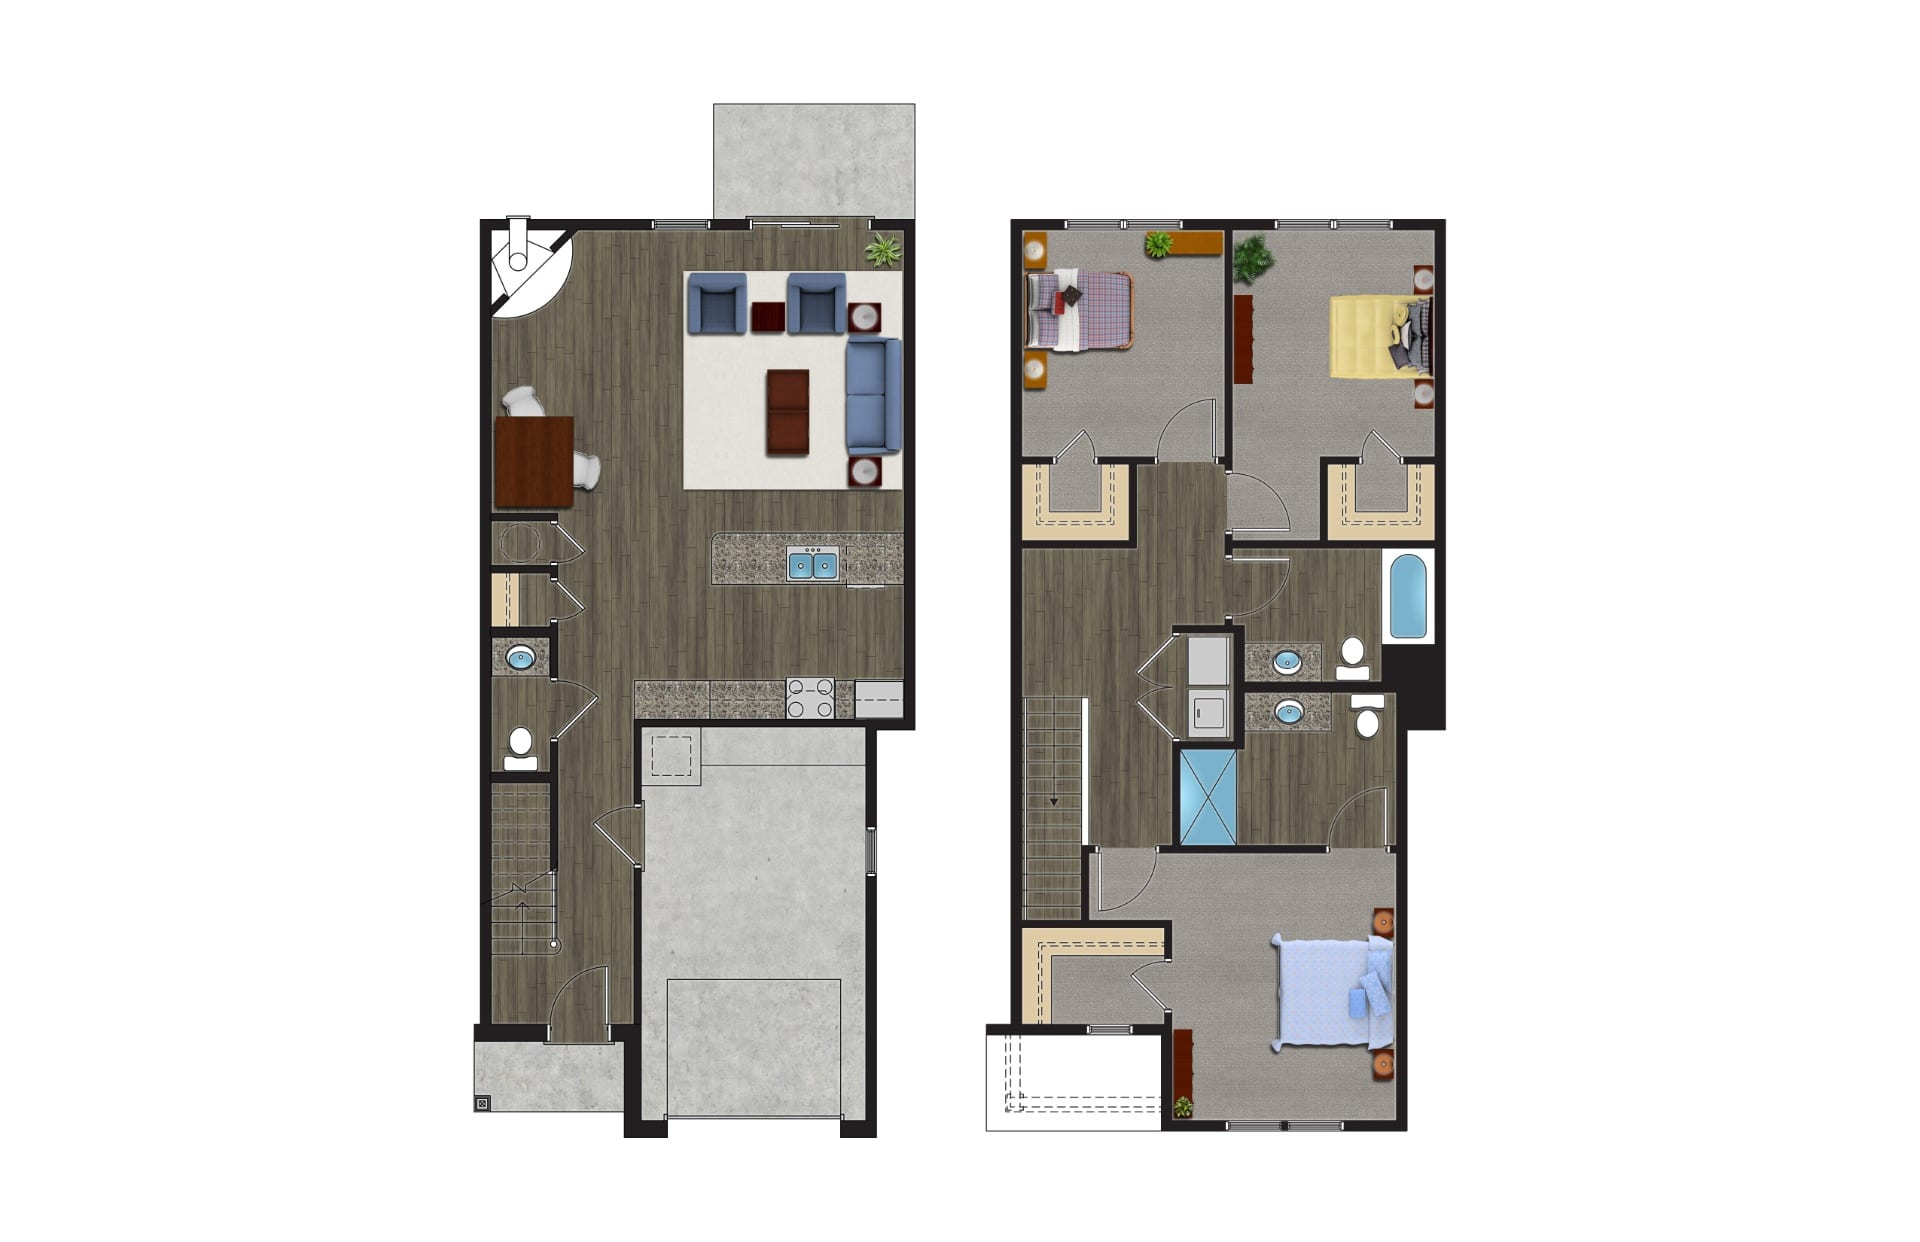 A Floor Plan of The Willow, Luxury Townhomes with Garages for rent. The 2 Story, 3 Bedroom Townhomes in Orchard Park NY are pet friendly townhomes.